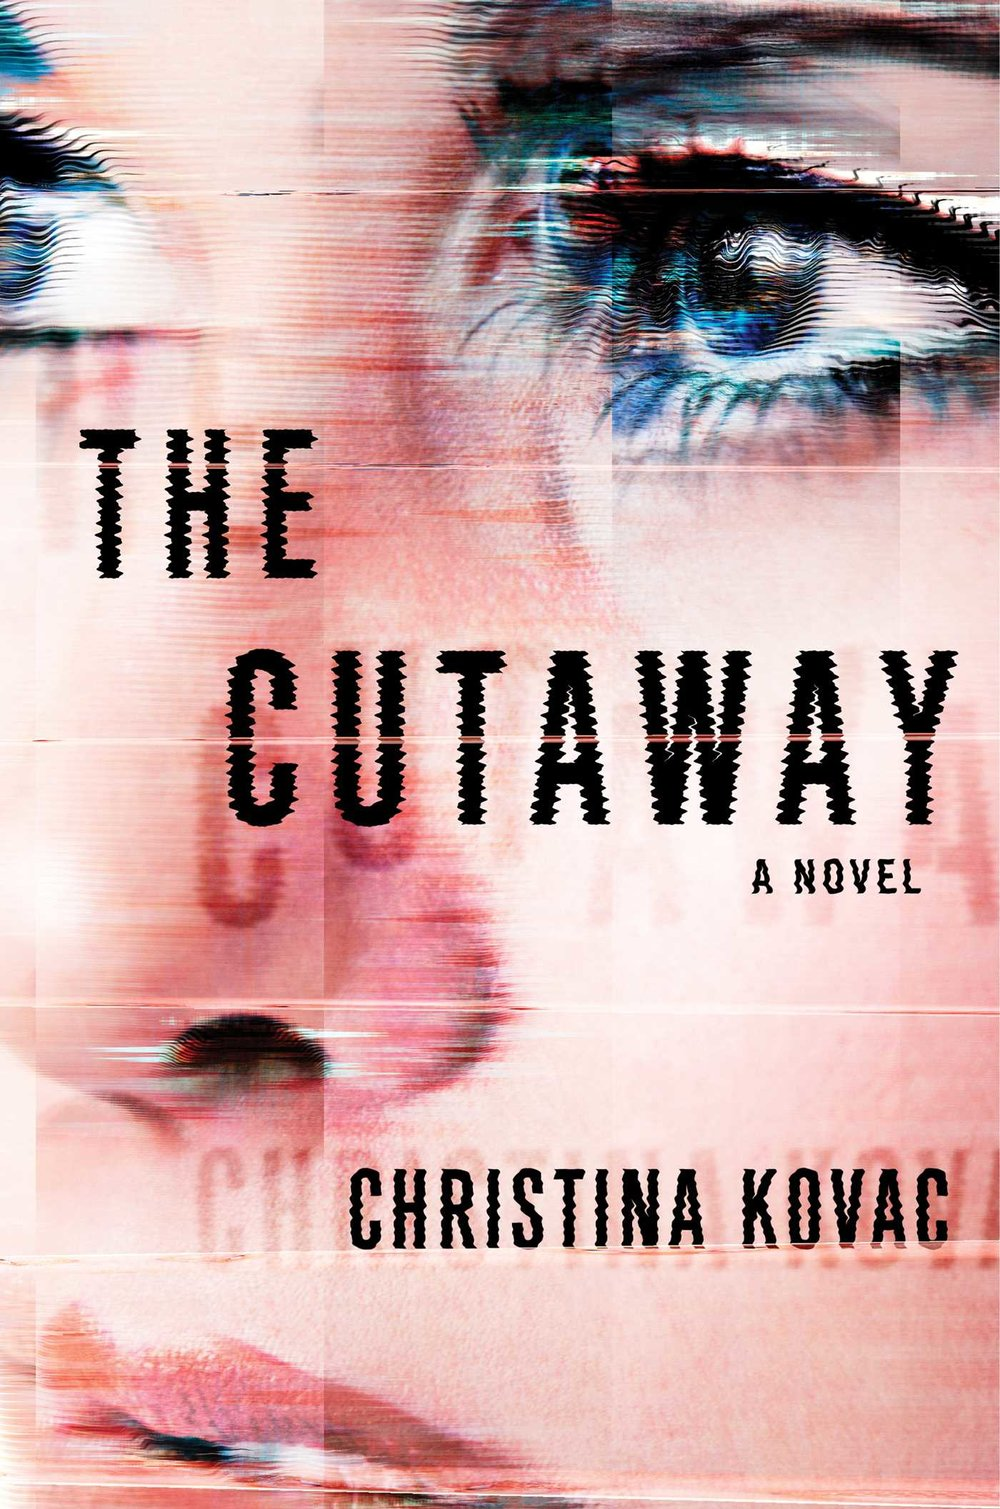 The Cutaway, a political thriller by Christina Kovac